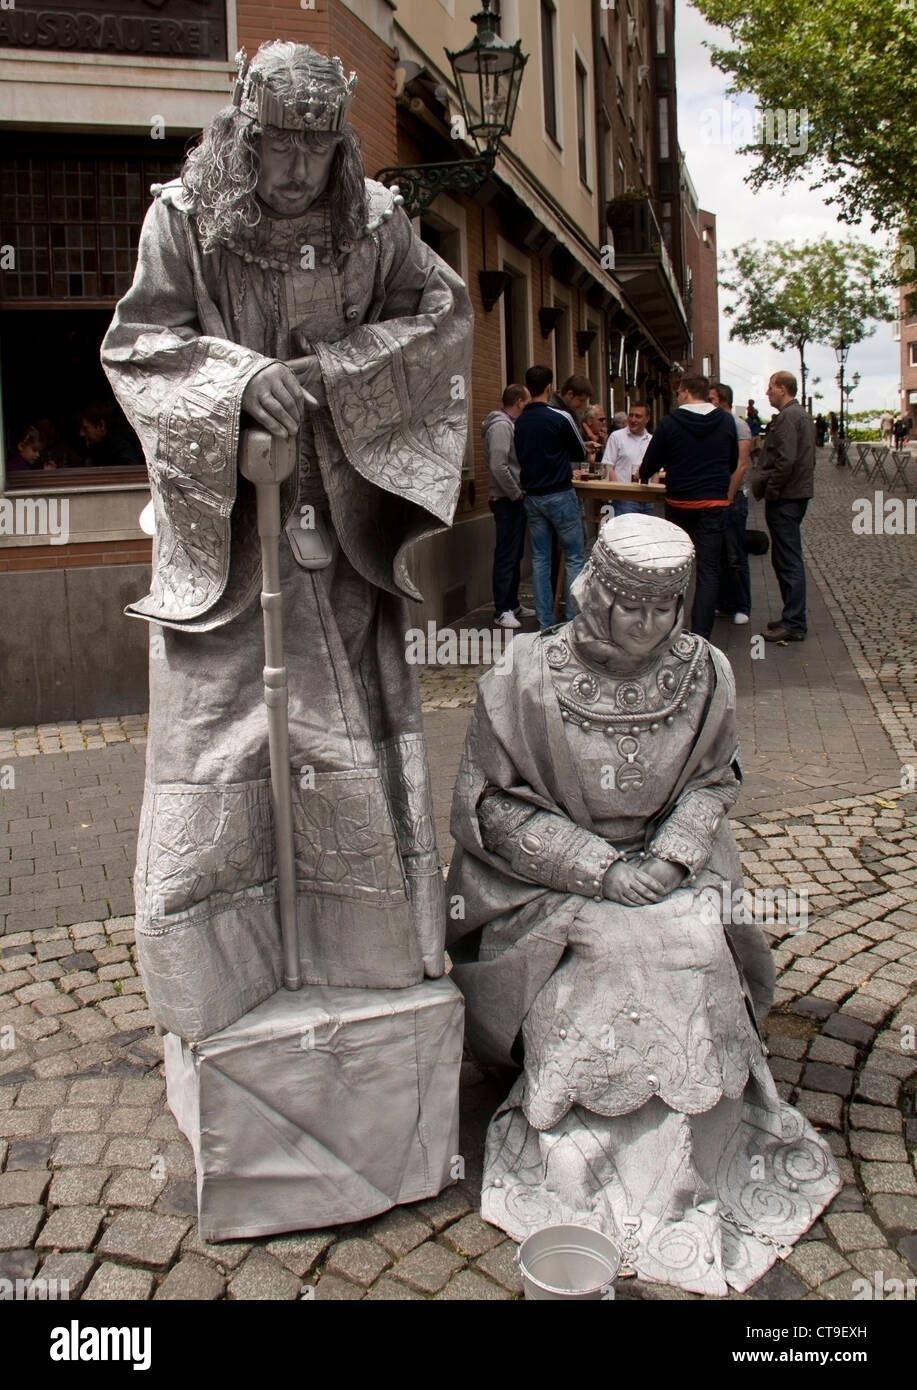 Dusseldorf, Germany - June 9th 2012. Street artists dressed as king and queen, bow to the people crossing by. - Stock Image